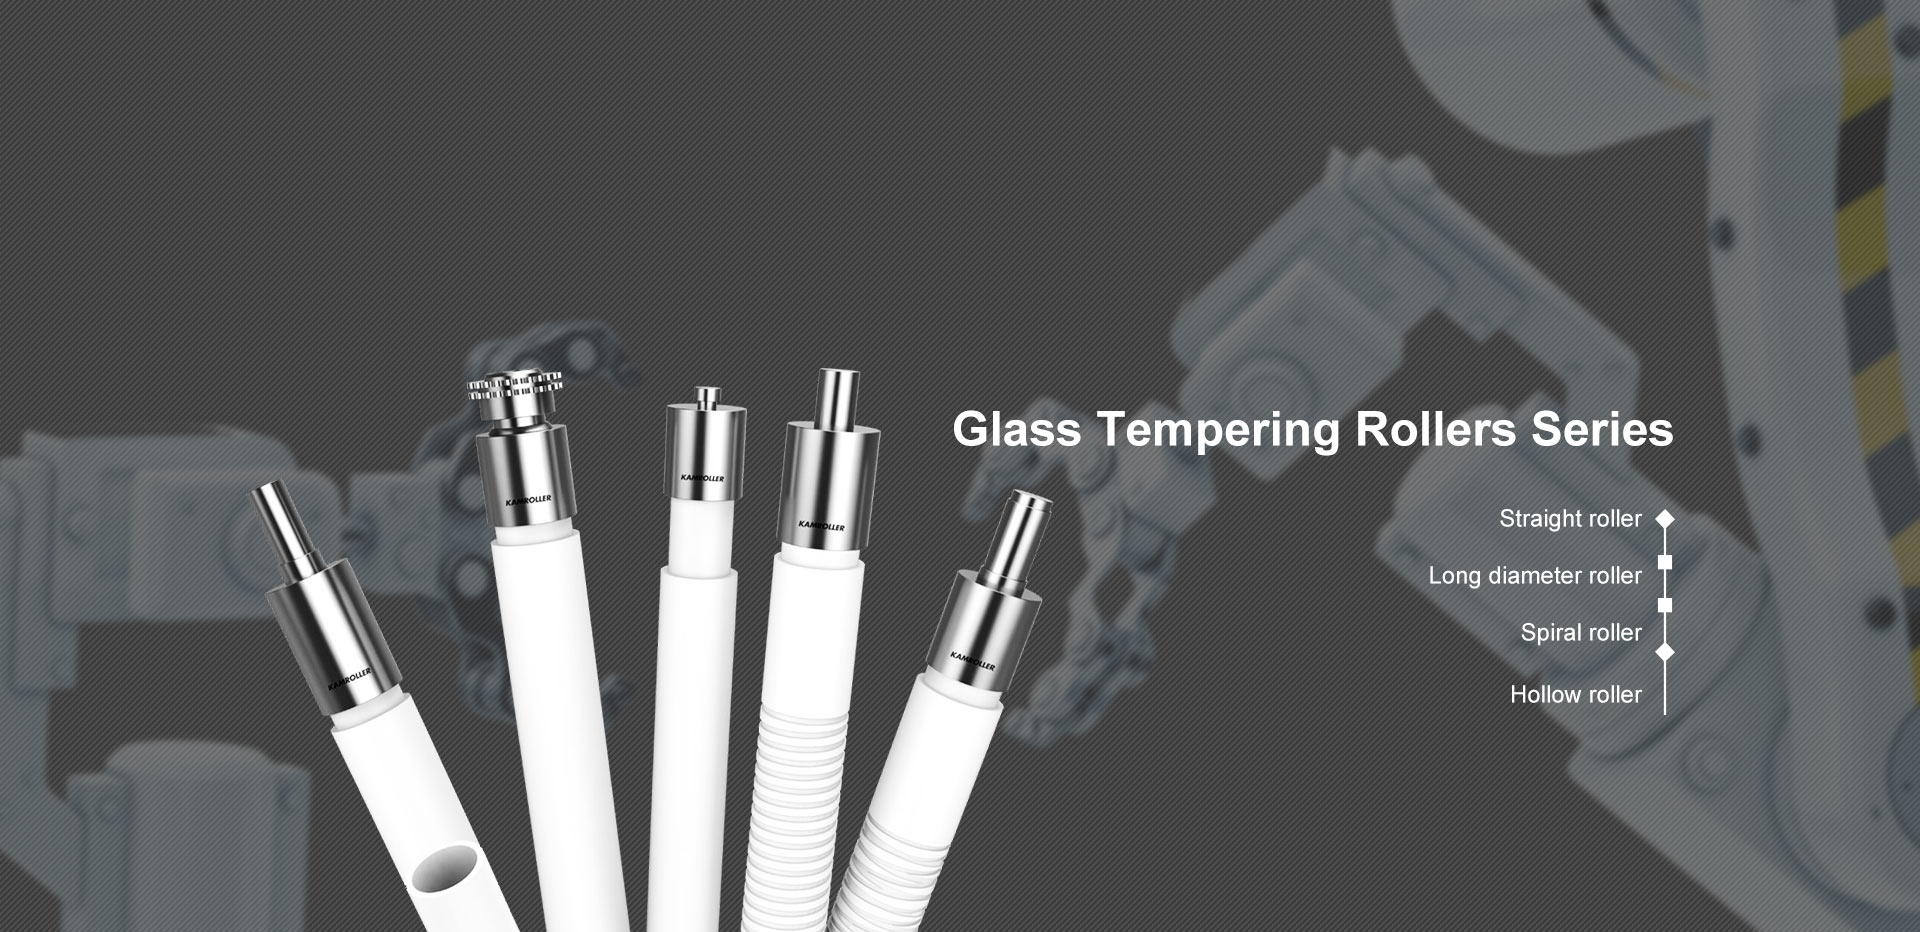 Glass Tempering roller Series